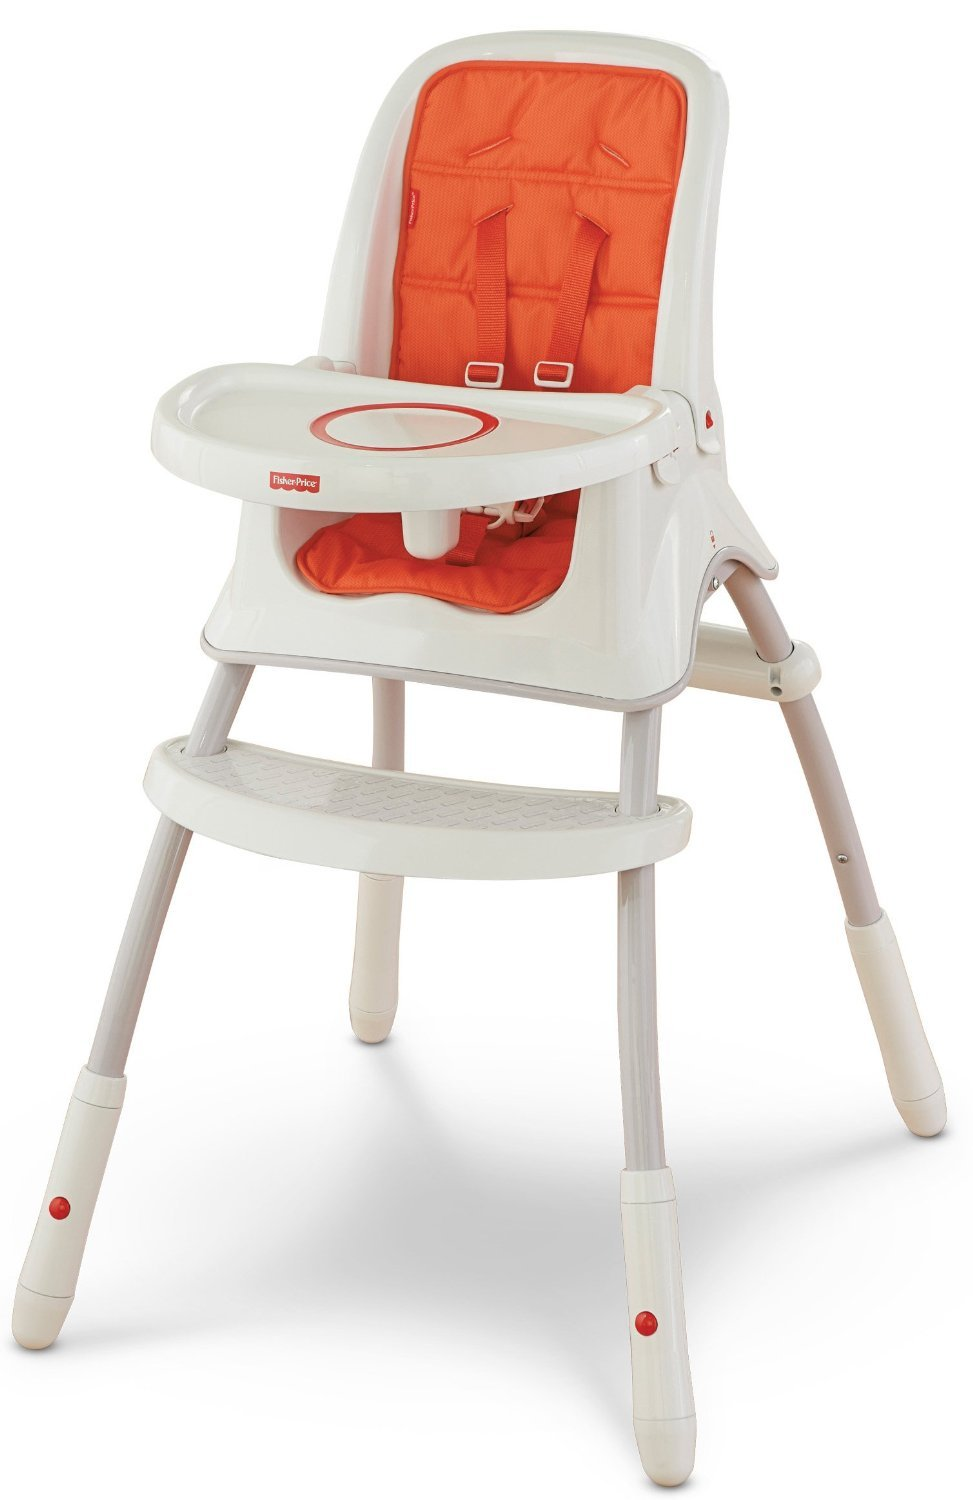 Buy Fisher Price Grow With Me High Chair Online At Low Prices In India    Amazon.in